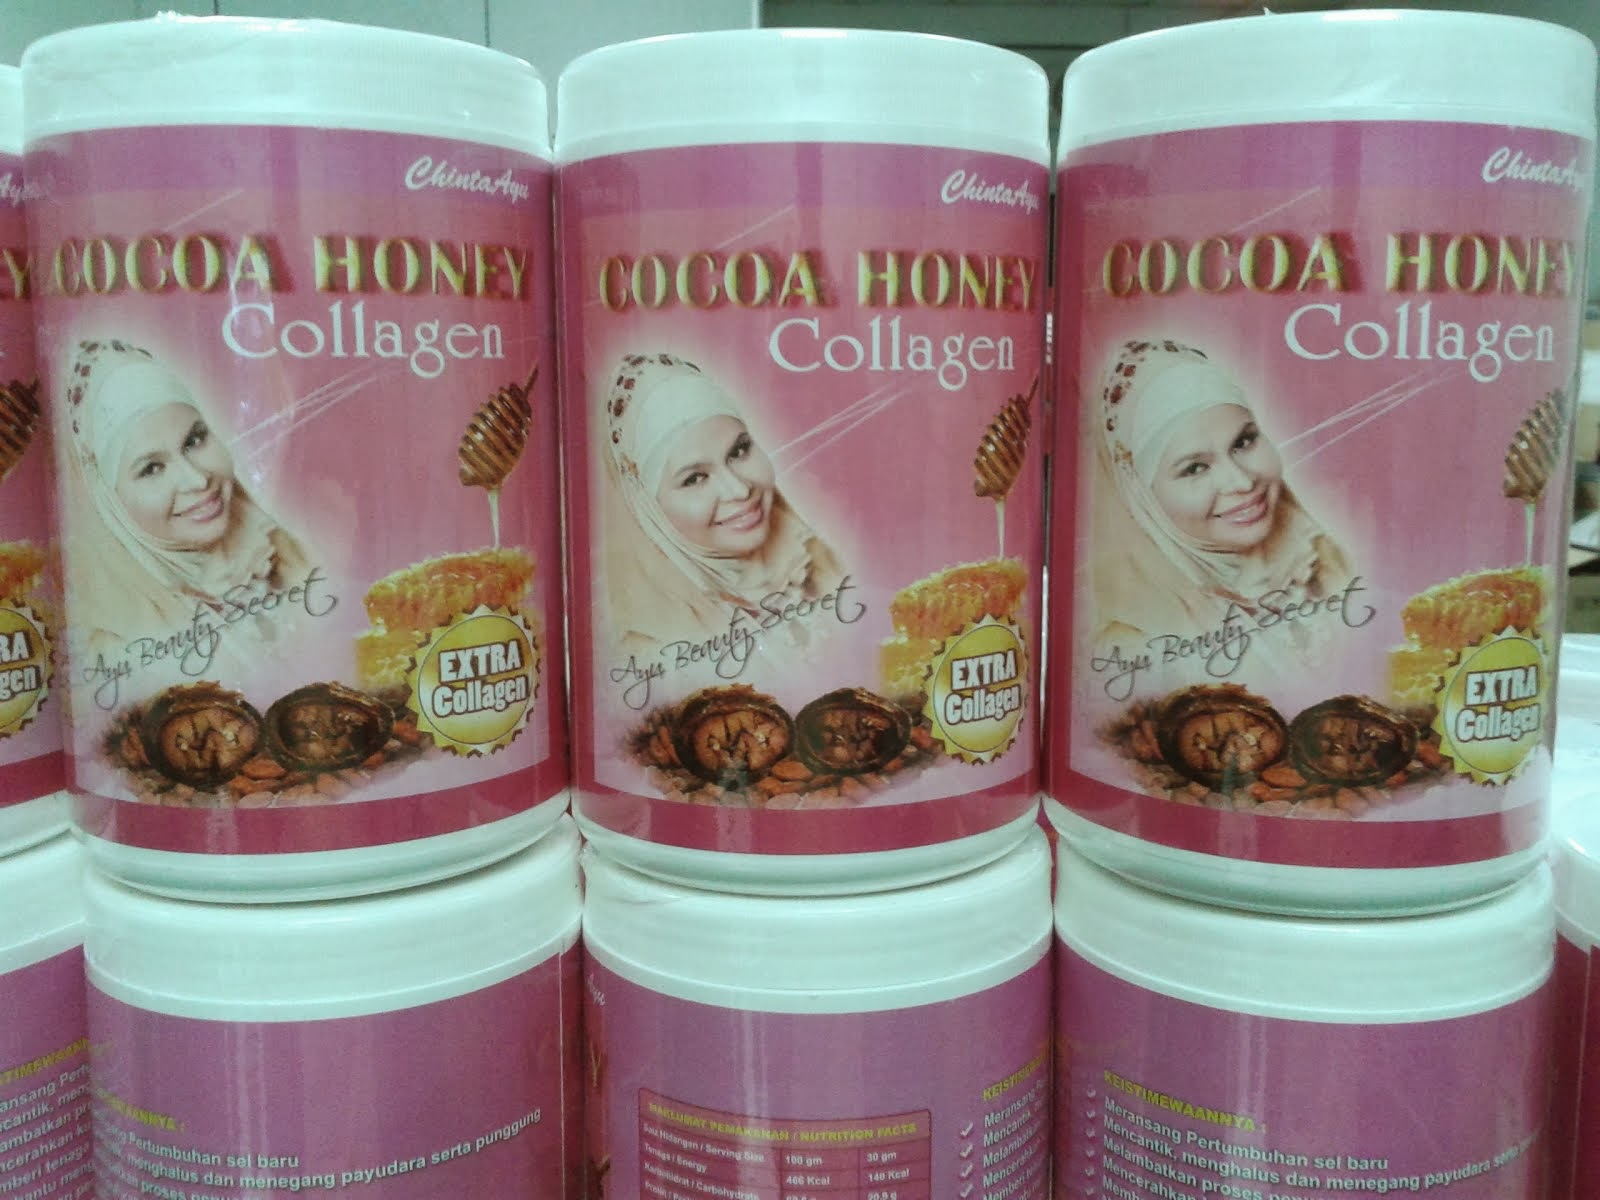 COCOA HONEY COLLAGEN